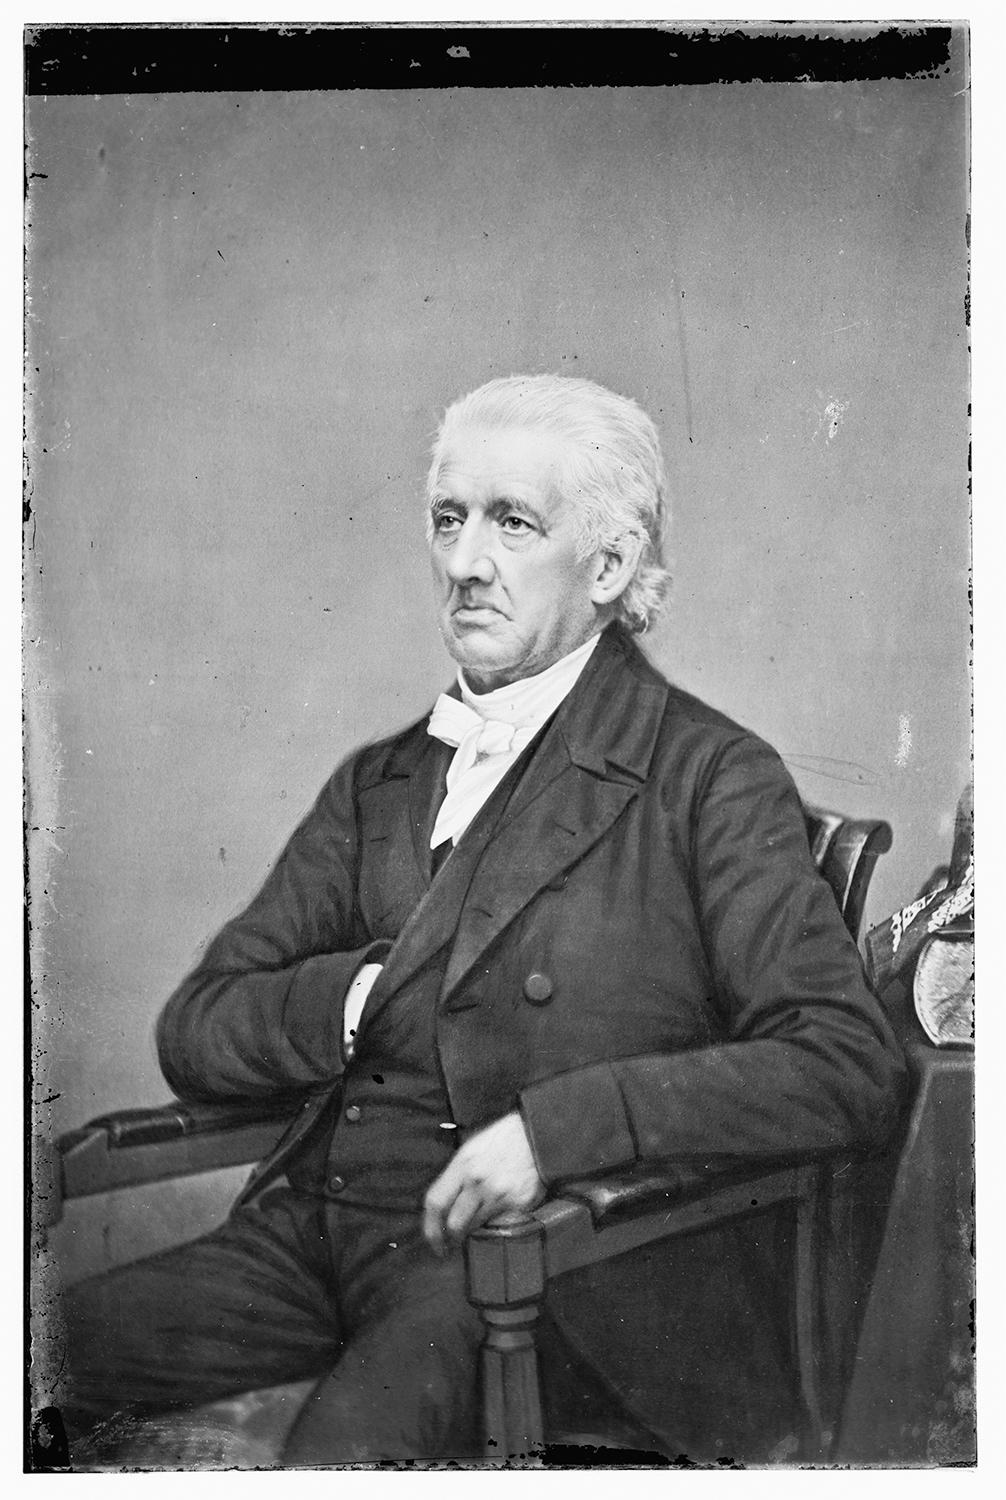 black and white photo of Lyman Beecher, wearing a black suit and white cravat, seated with his hand in his pocket